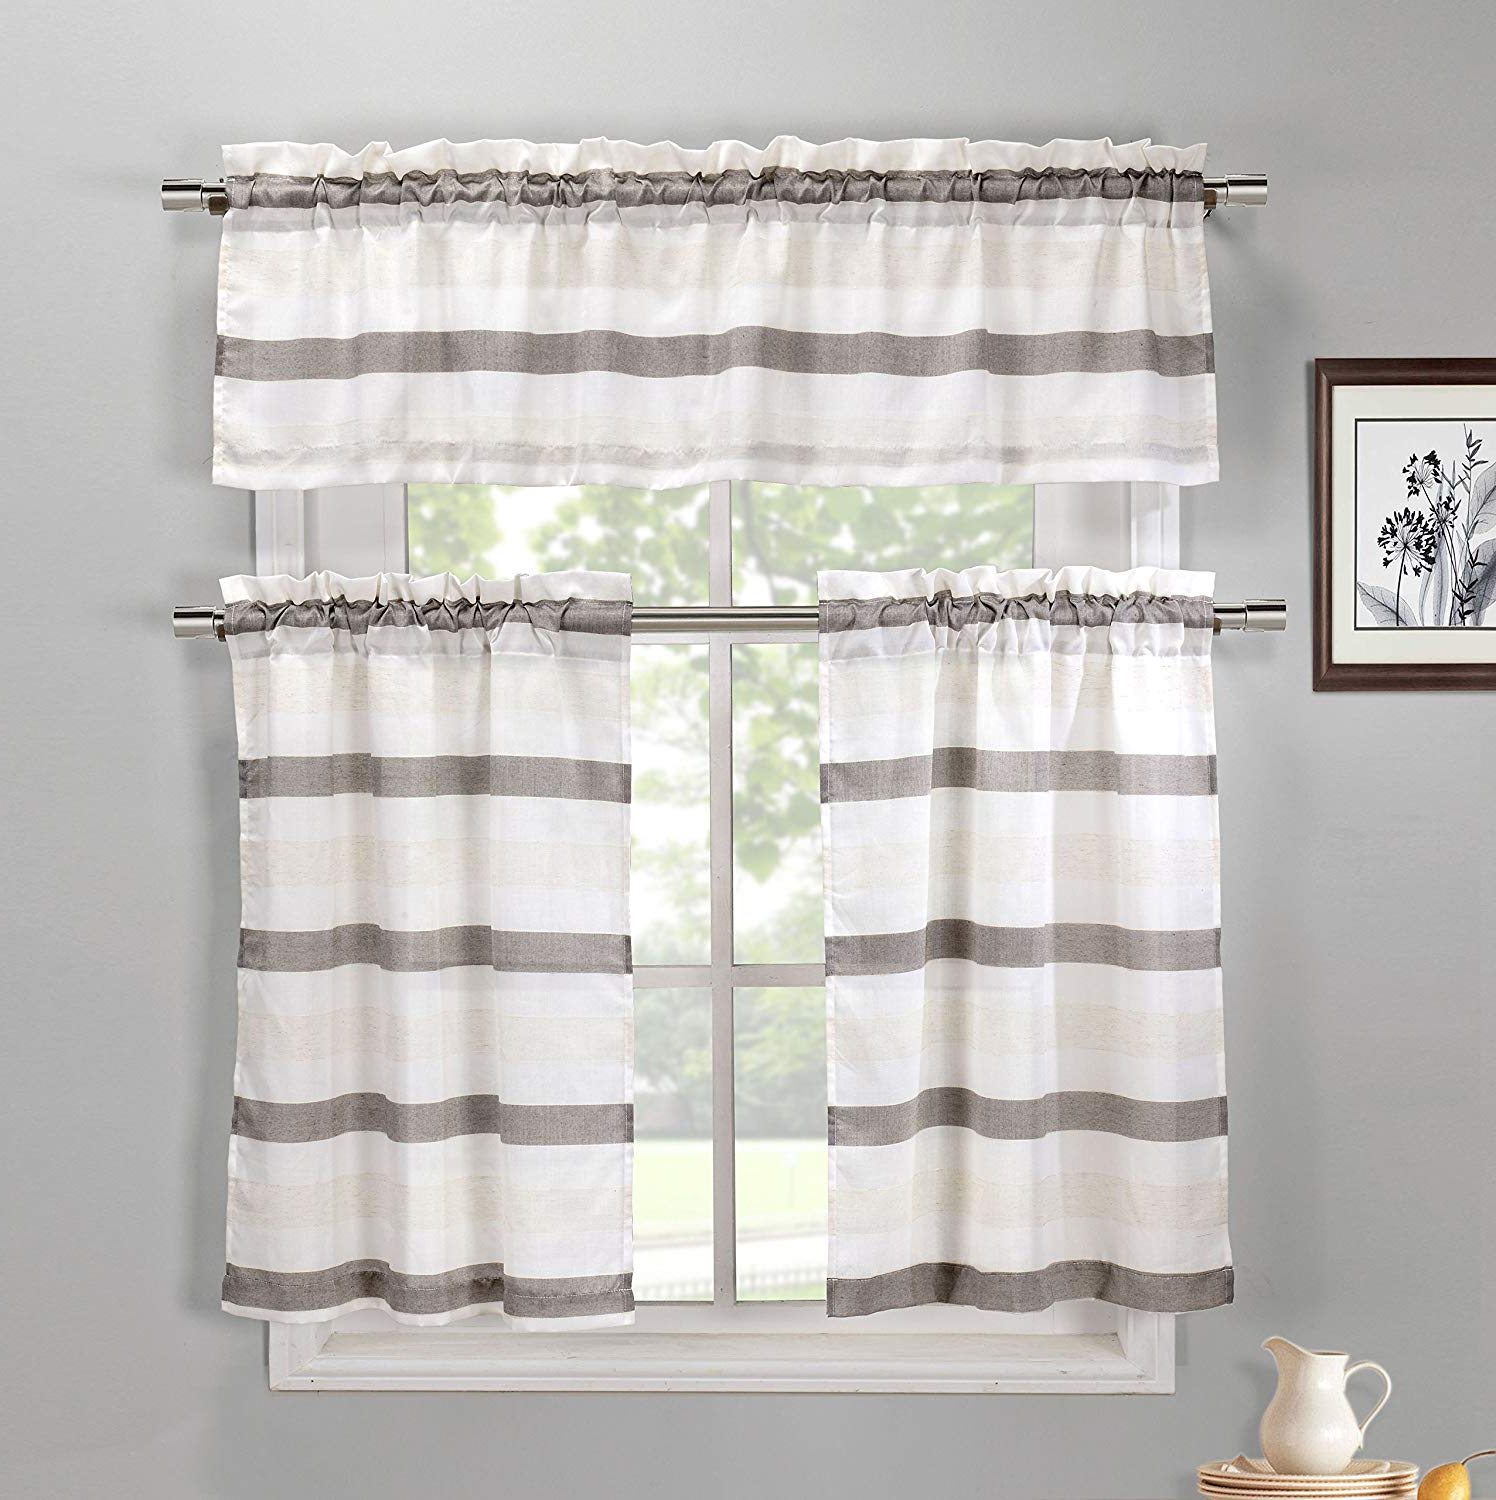 Well Liked Tree Branch Valance And Tiers Sets With Taupe, Ivory And Beige 3 Piece Kitchen Window Curtain Set: Natural Linen Blend, 1 Valance, 2 Tiers (View 1 of 20)